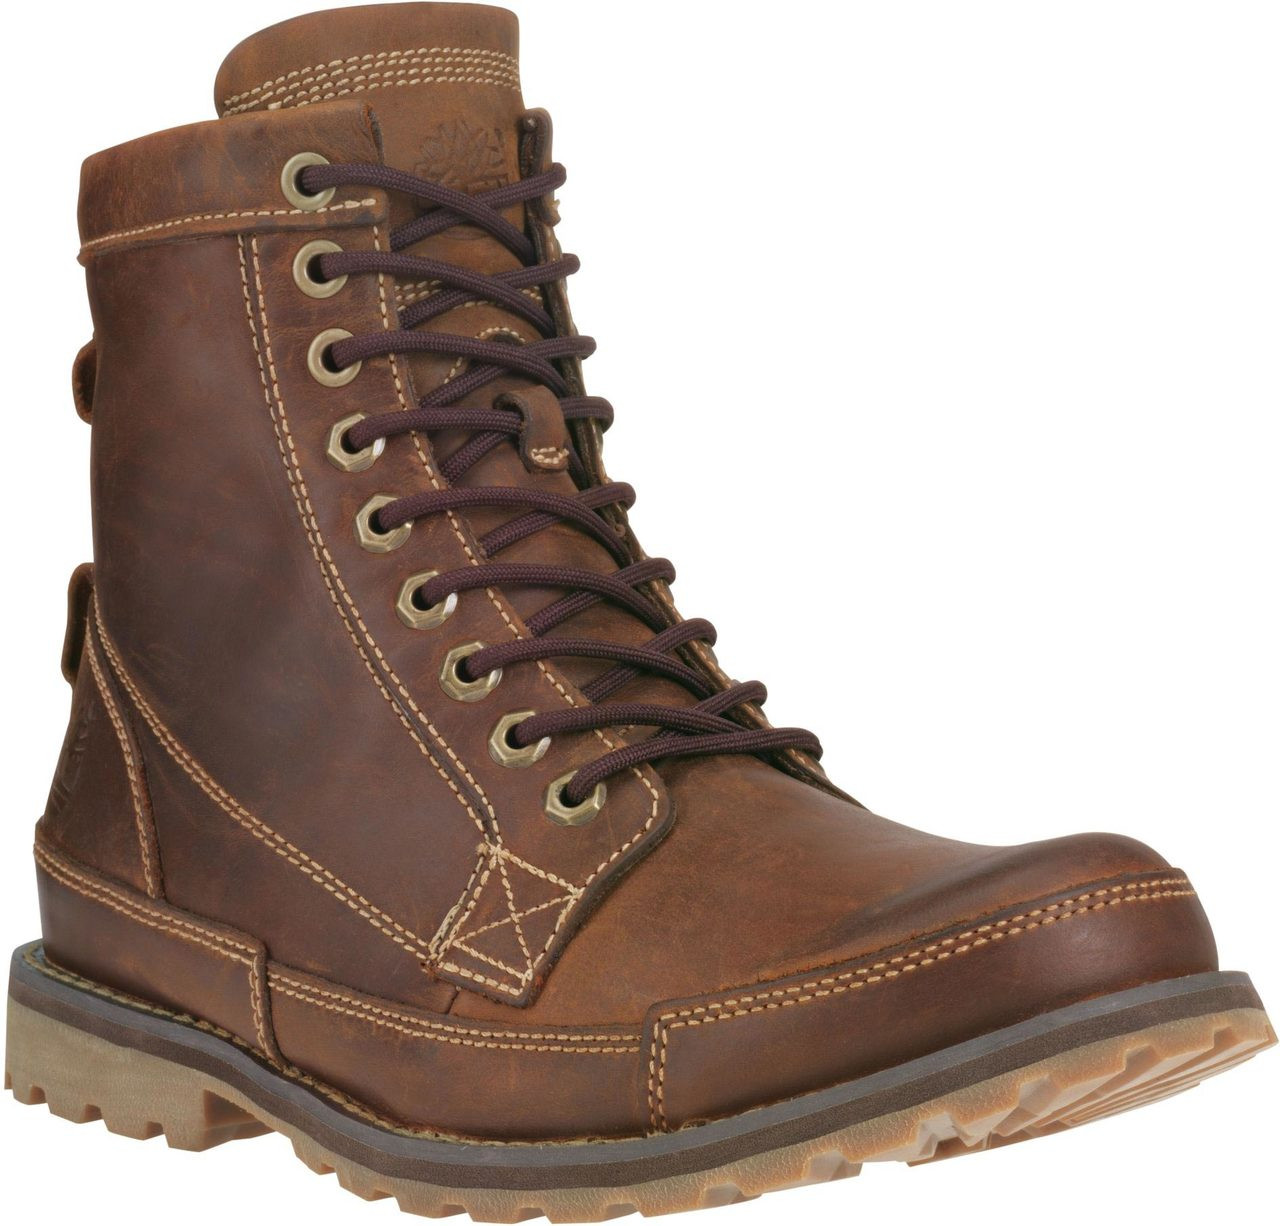 Men's Timberland Earthkeepers Original 6'' Boots Red Brown T57v8104